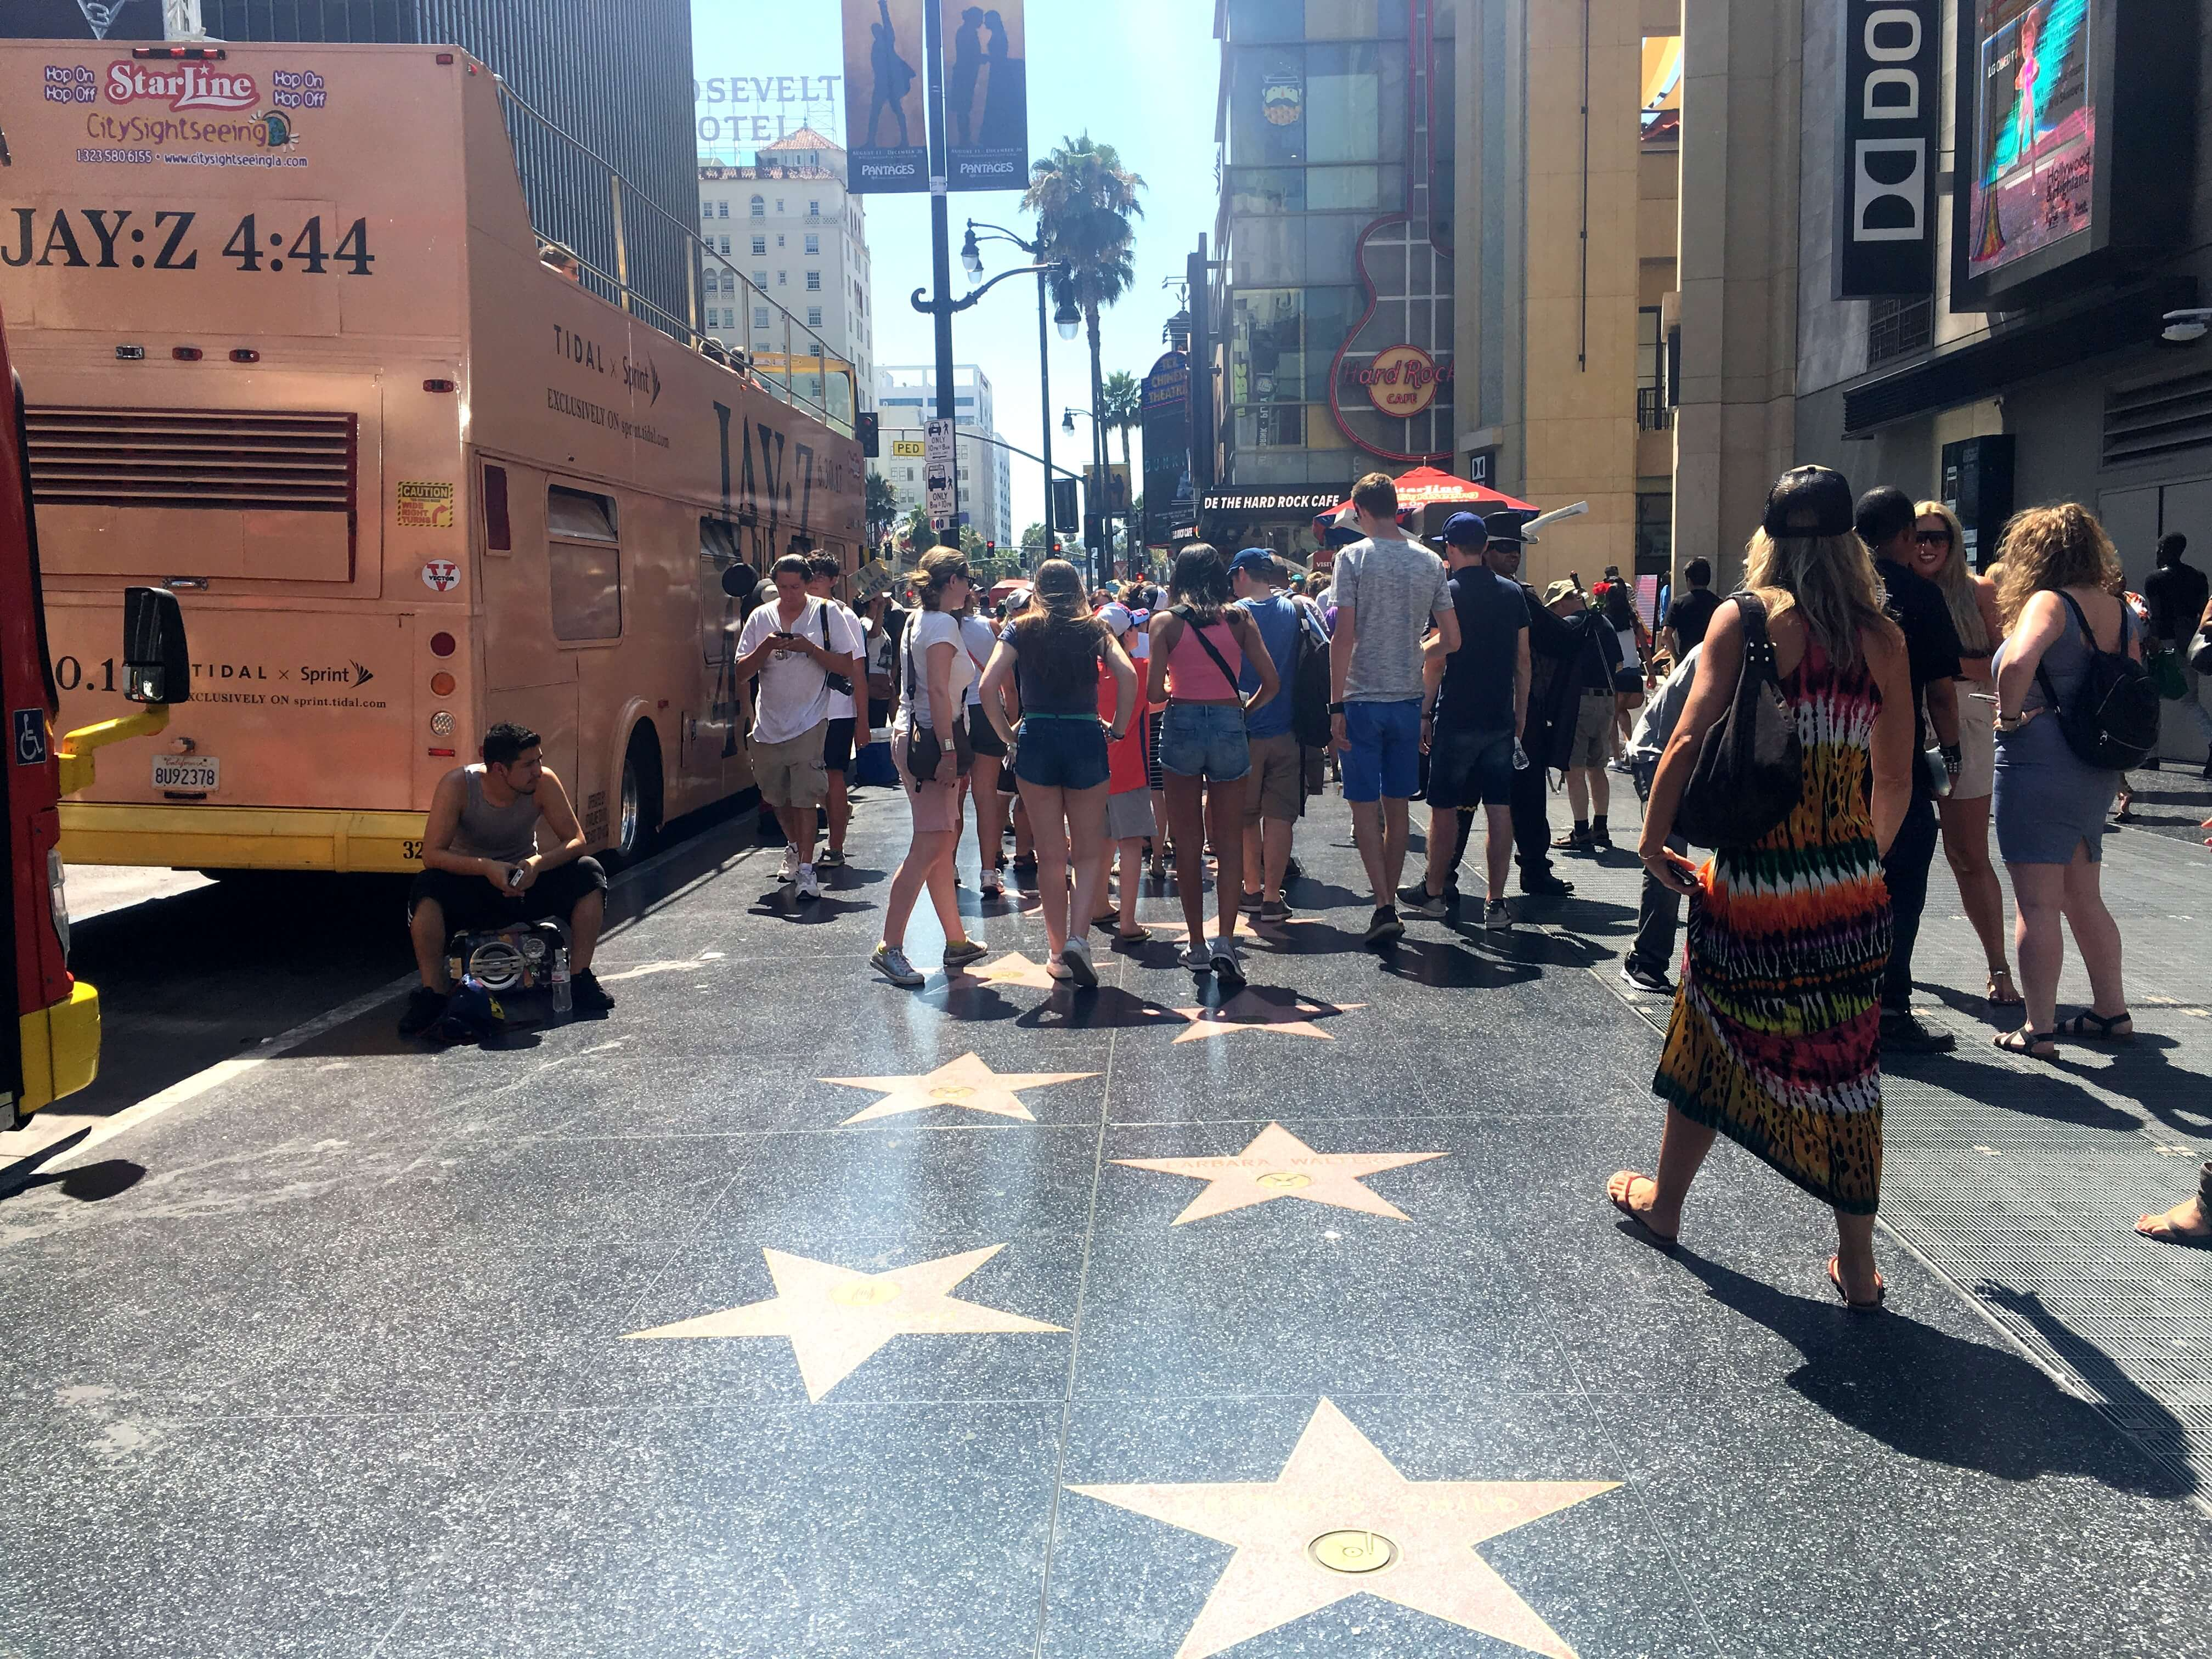 los-angeles-reisetagebuch-makeupinflight-hollywood-walk-of-fame-1